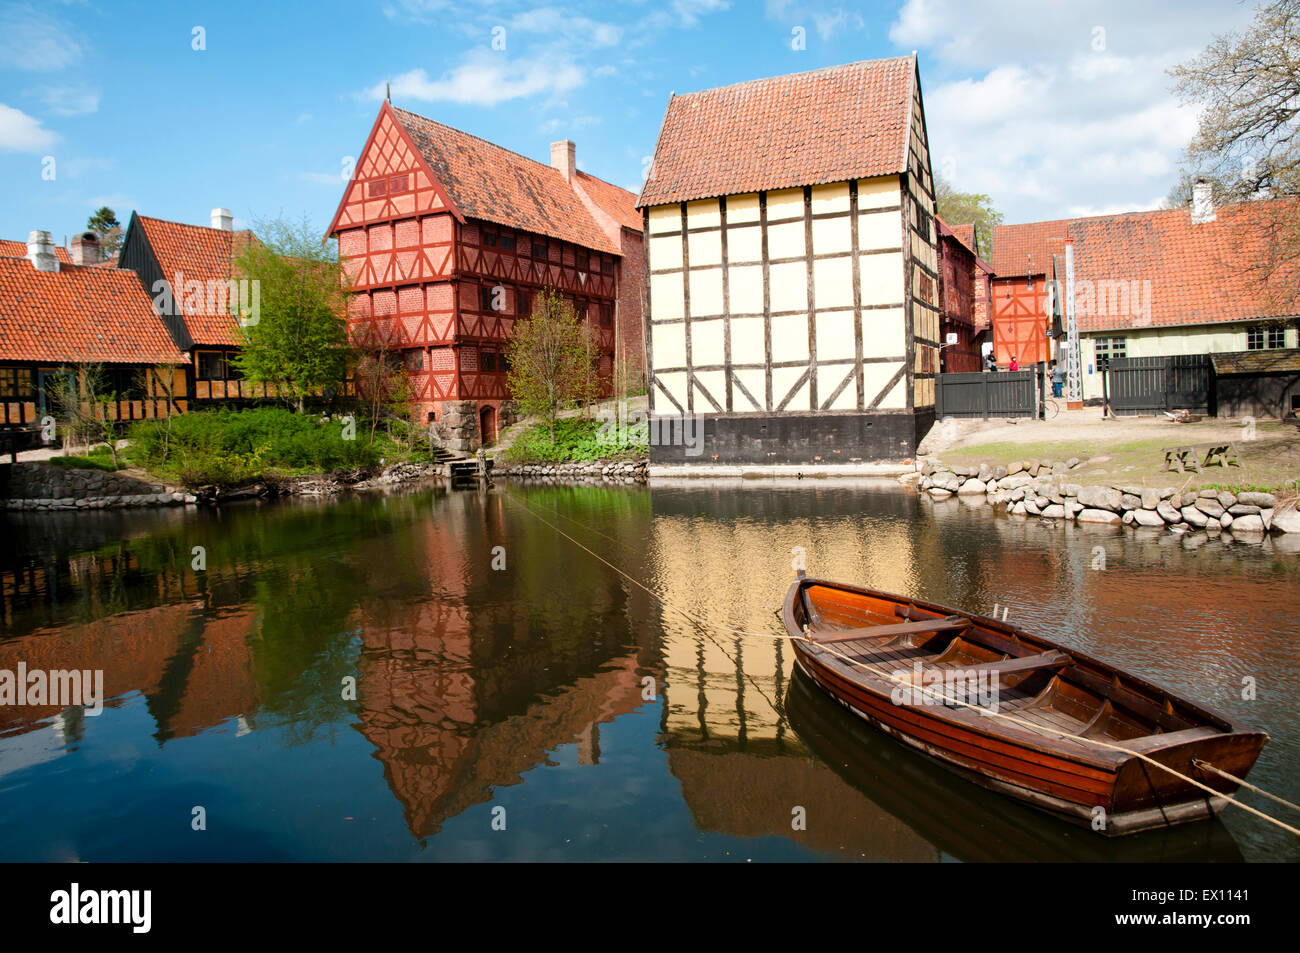 The Old Town - Aarhus - Denmark - Stock Image